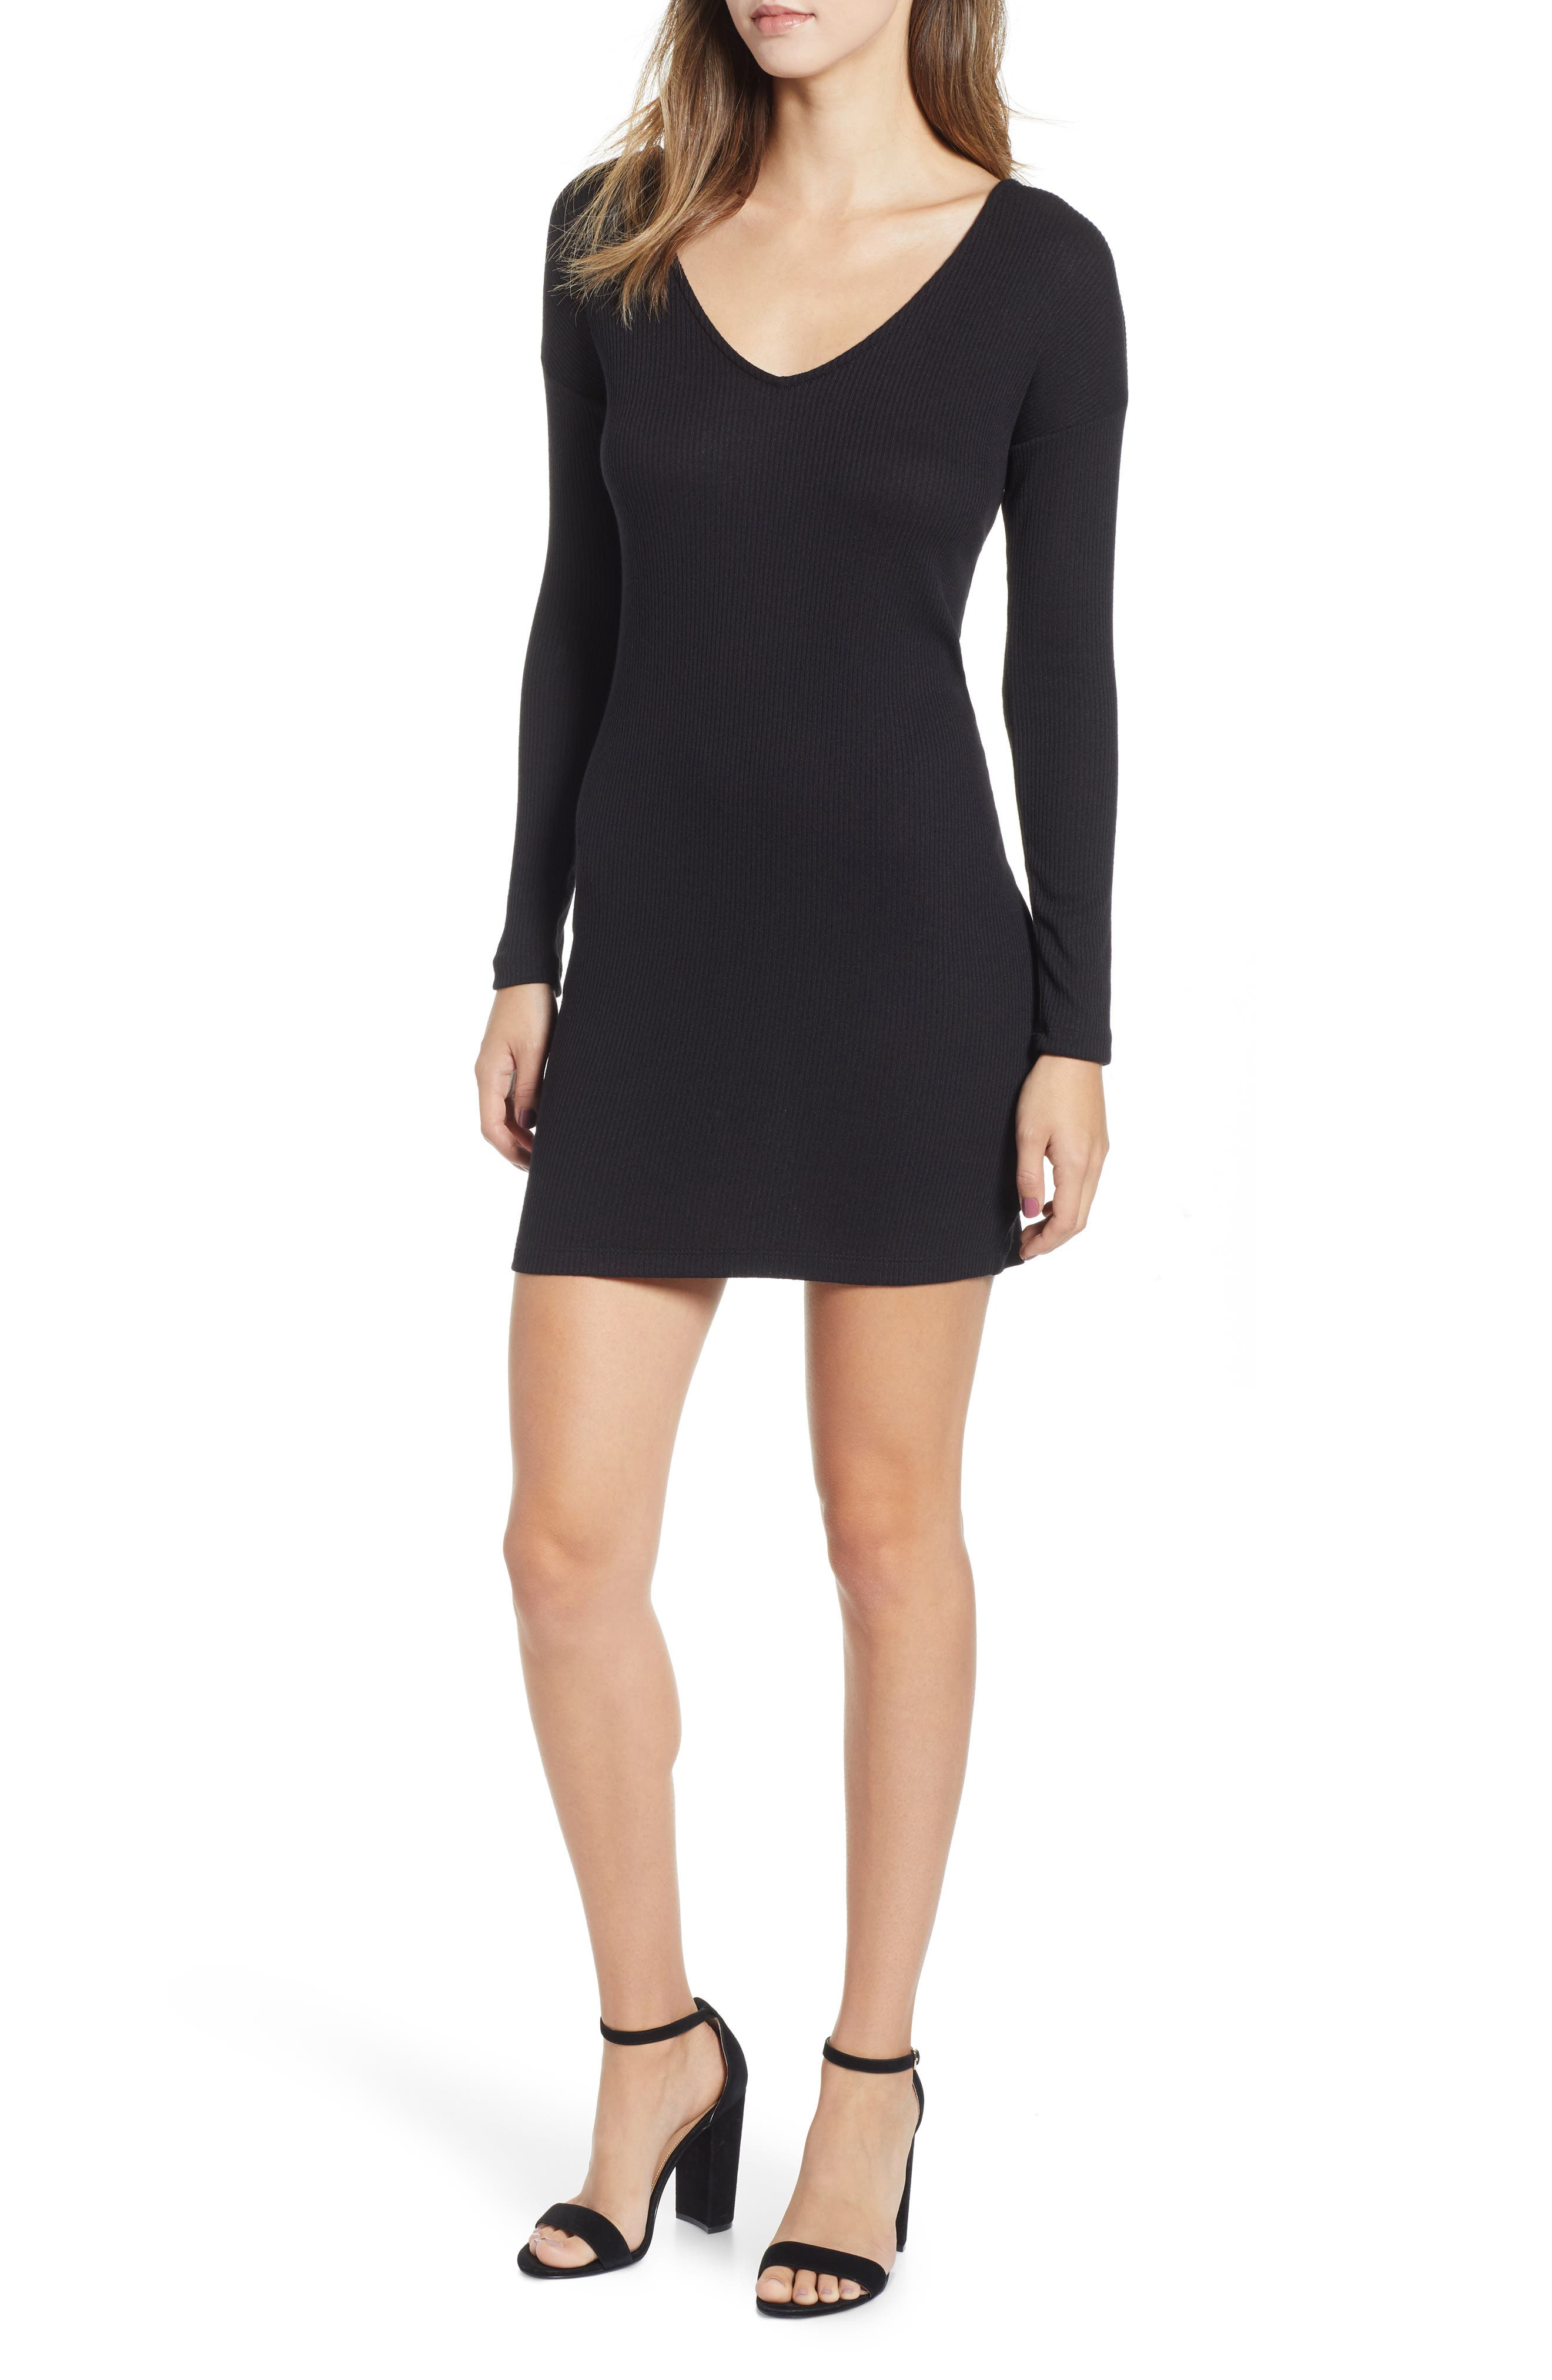 Socialite Twist Back Ribbed Dress, Black